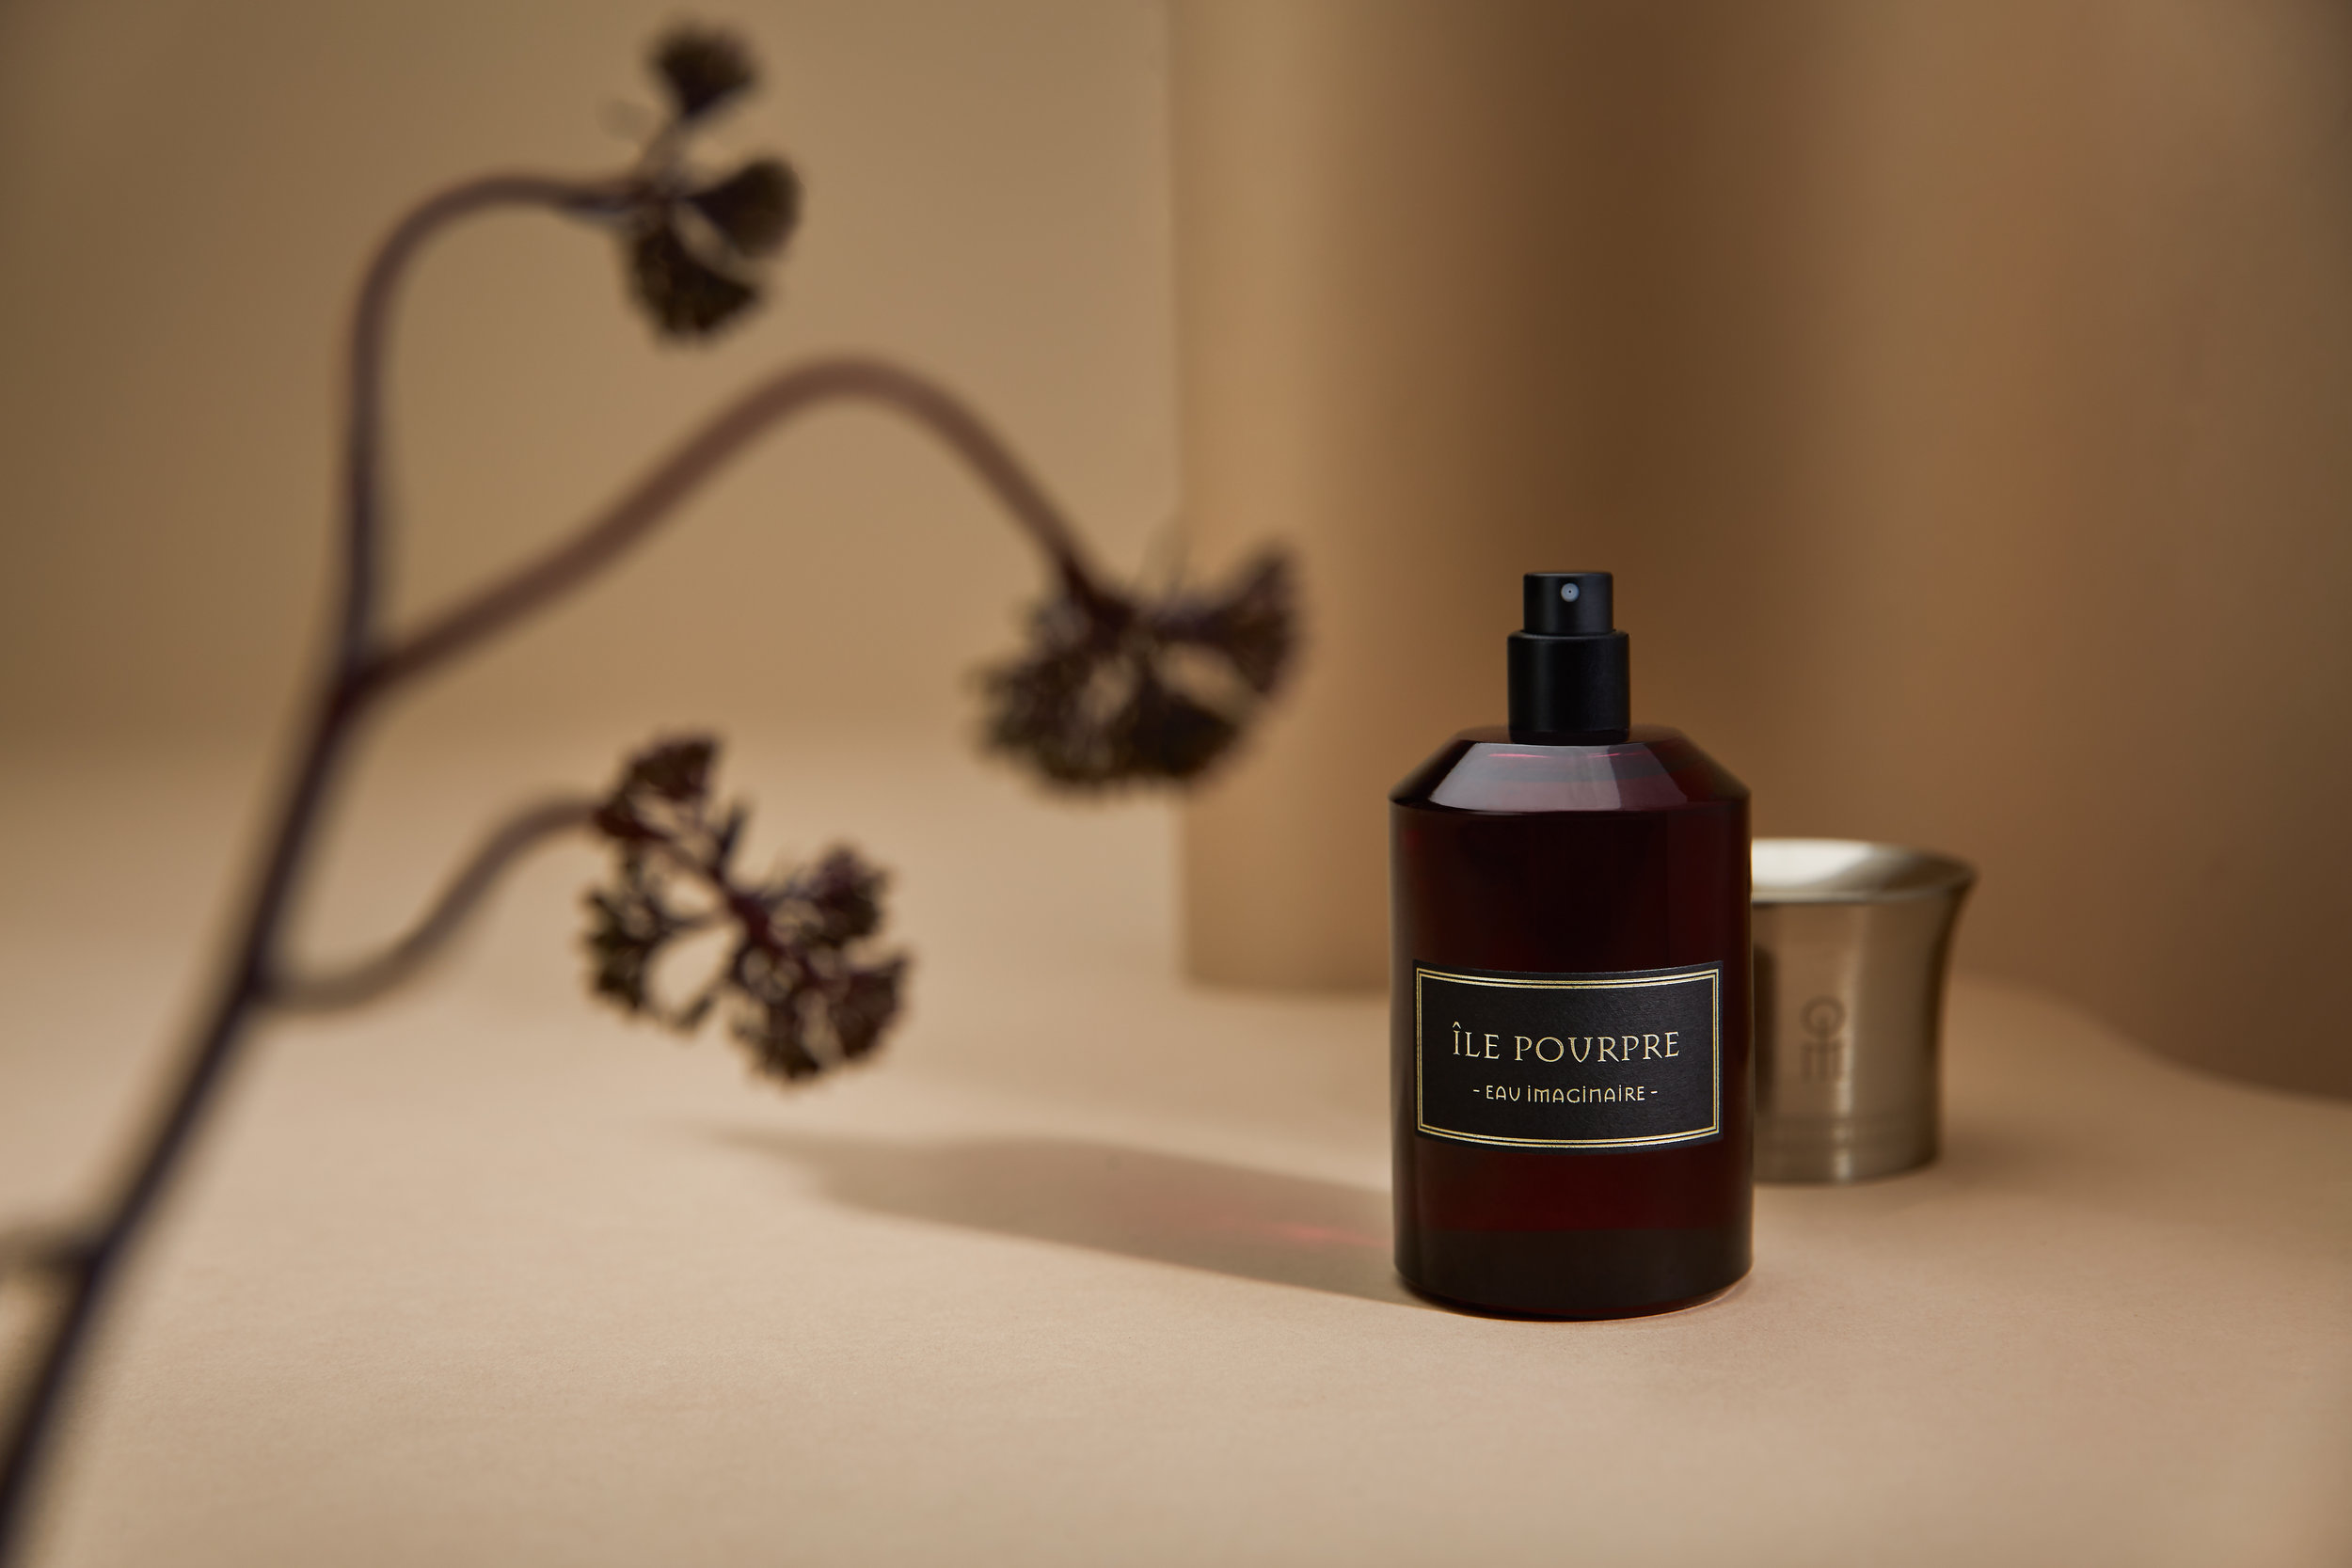 Liquides Imaginaires at H Parfums